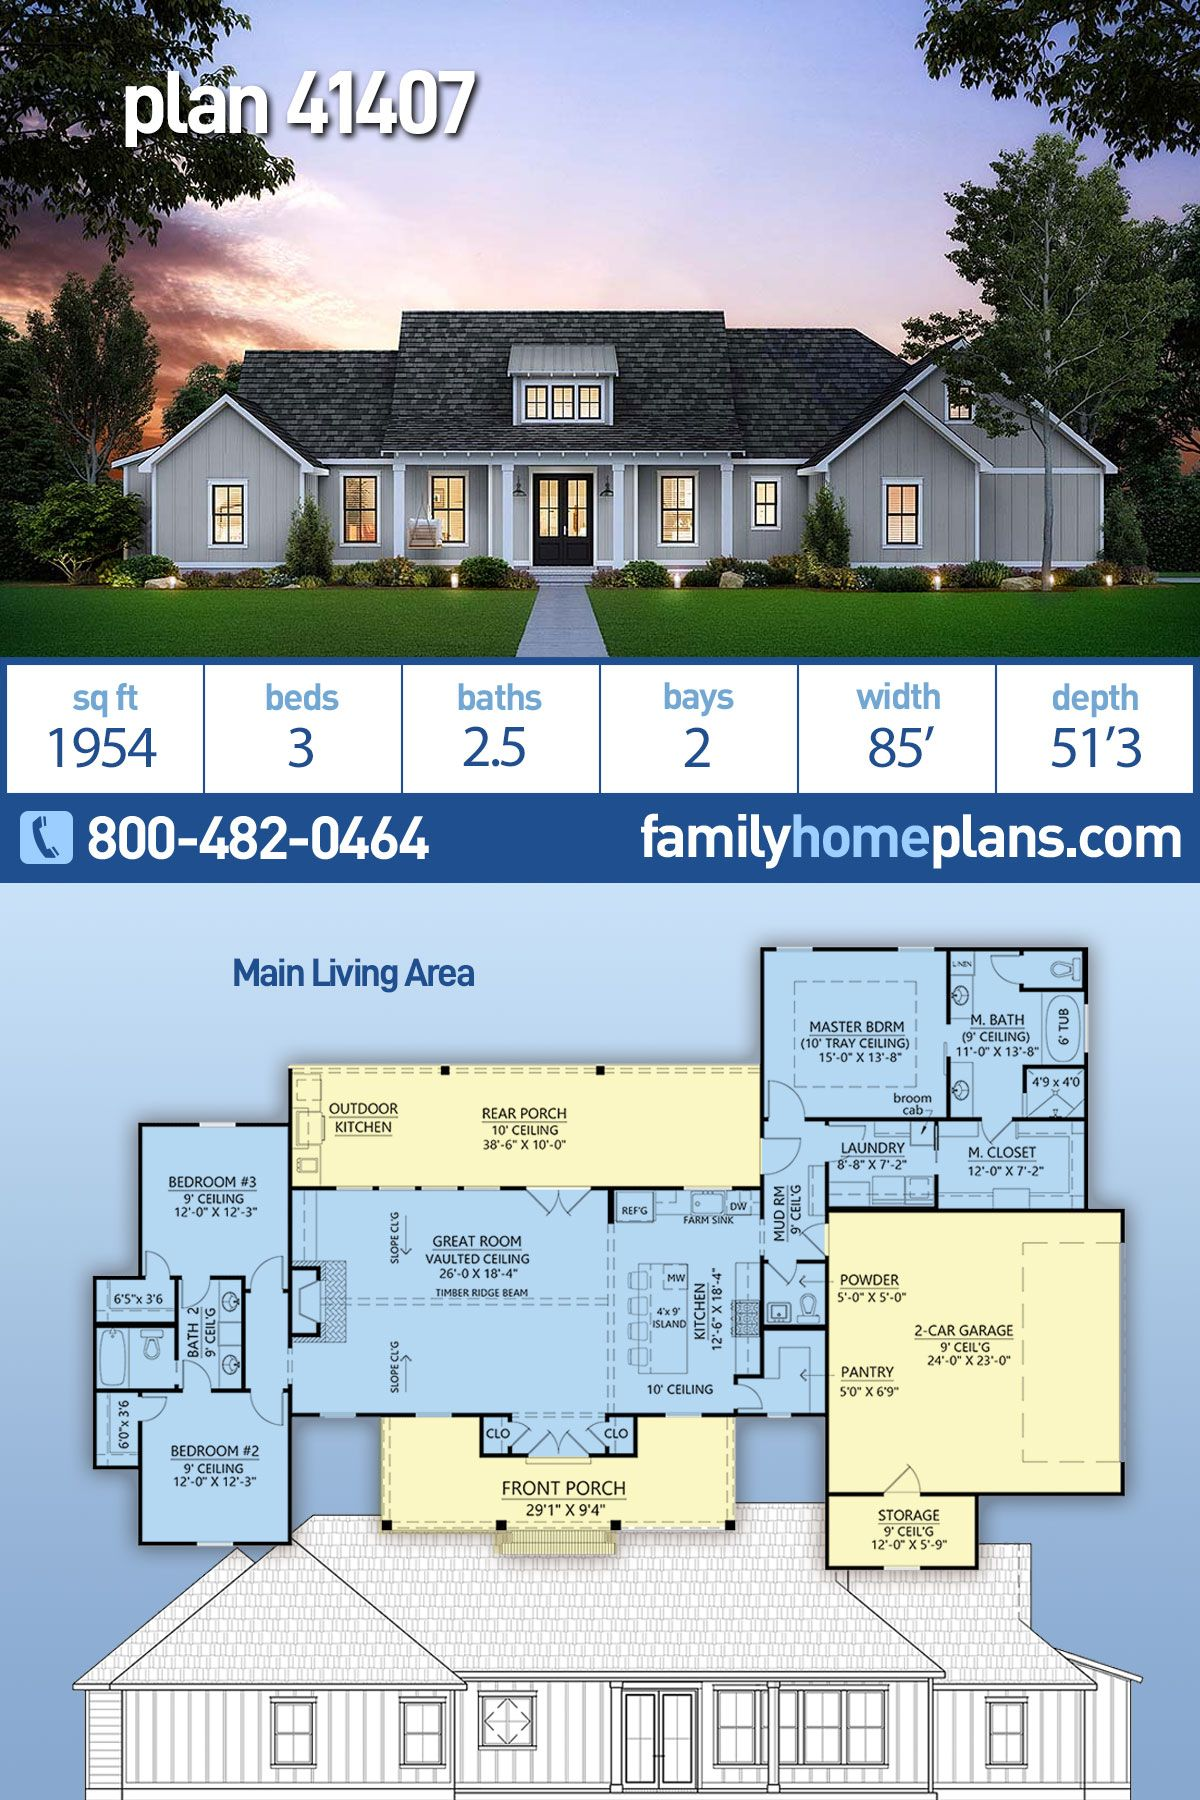 Southern Style House Plan 41407 With 3 Bed 3 Bath 2 Car Garage House Plans Farmhouse Ranch House Plans House Plans